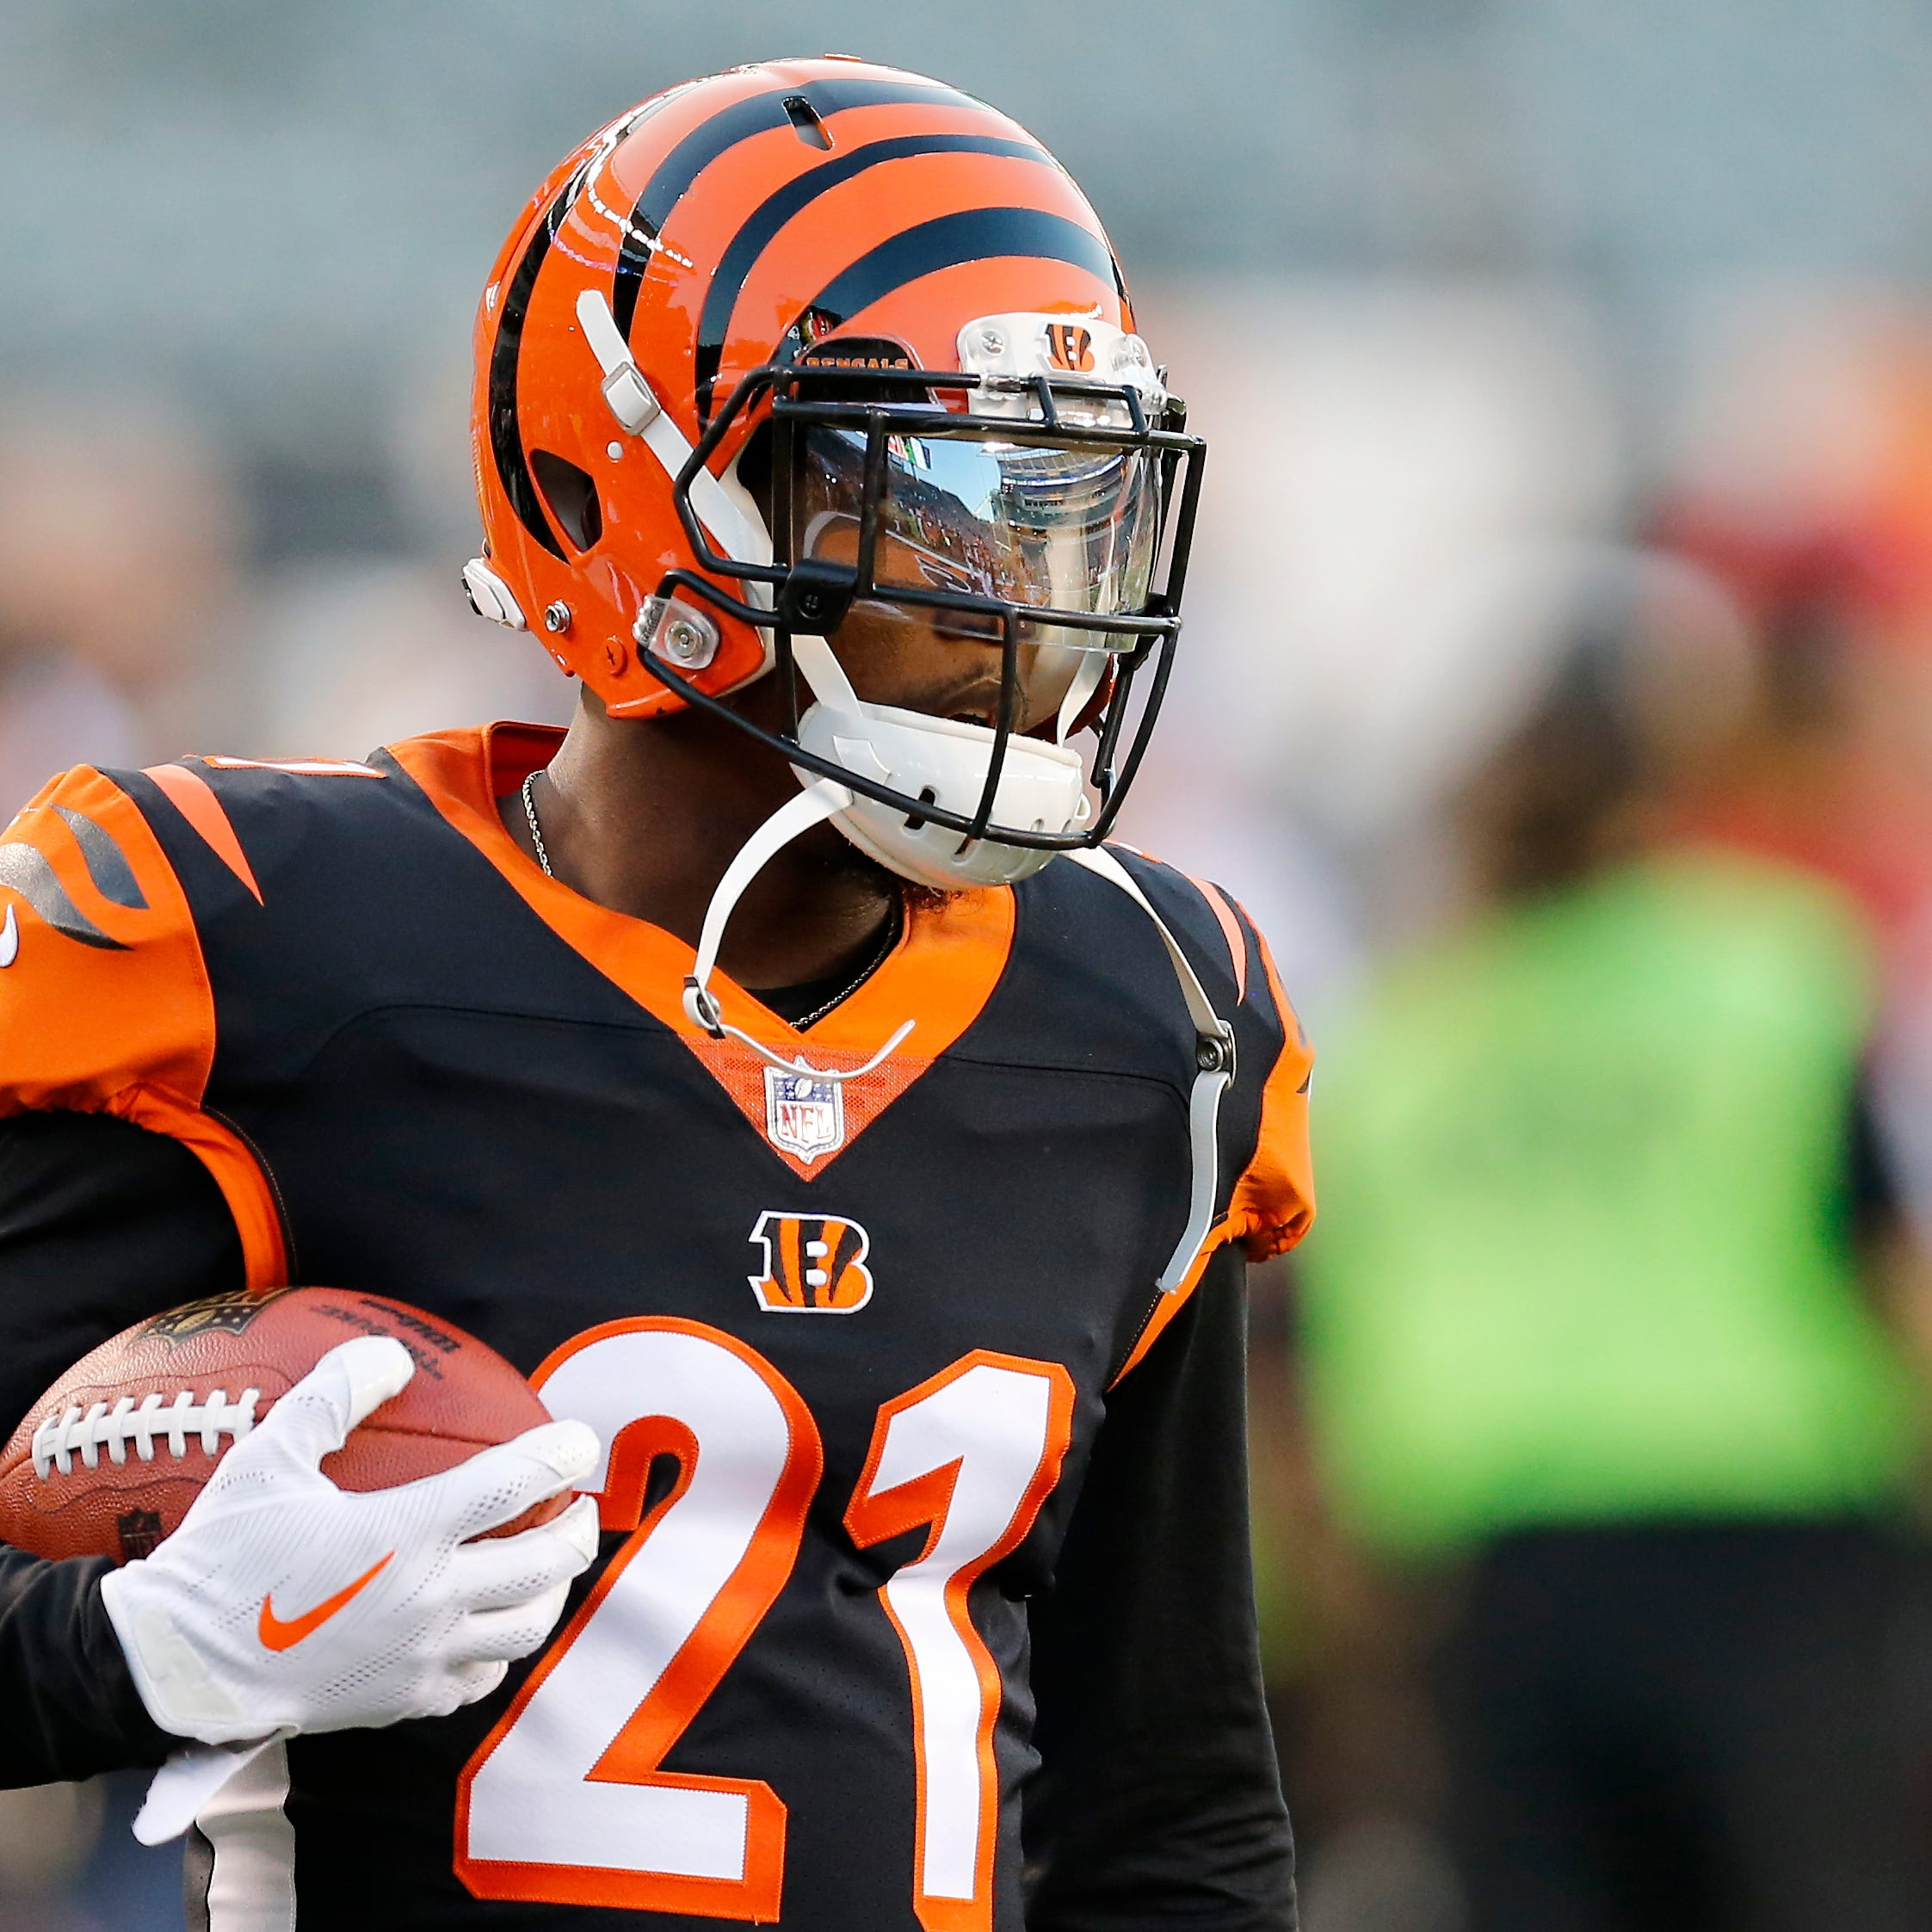 Bengals Walkthru: Darqueze Dennard free agency case is fascinating